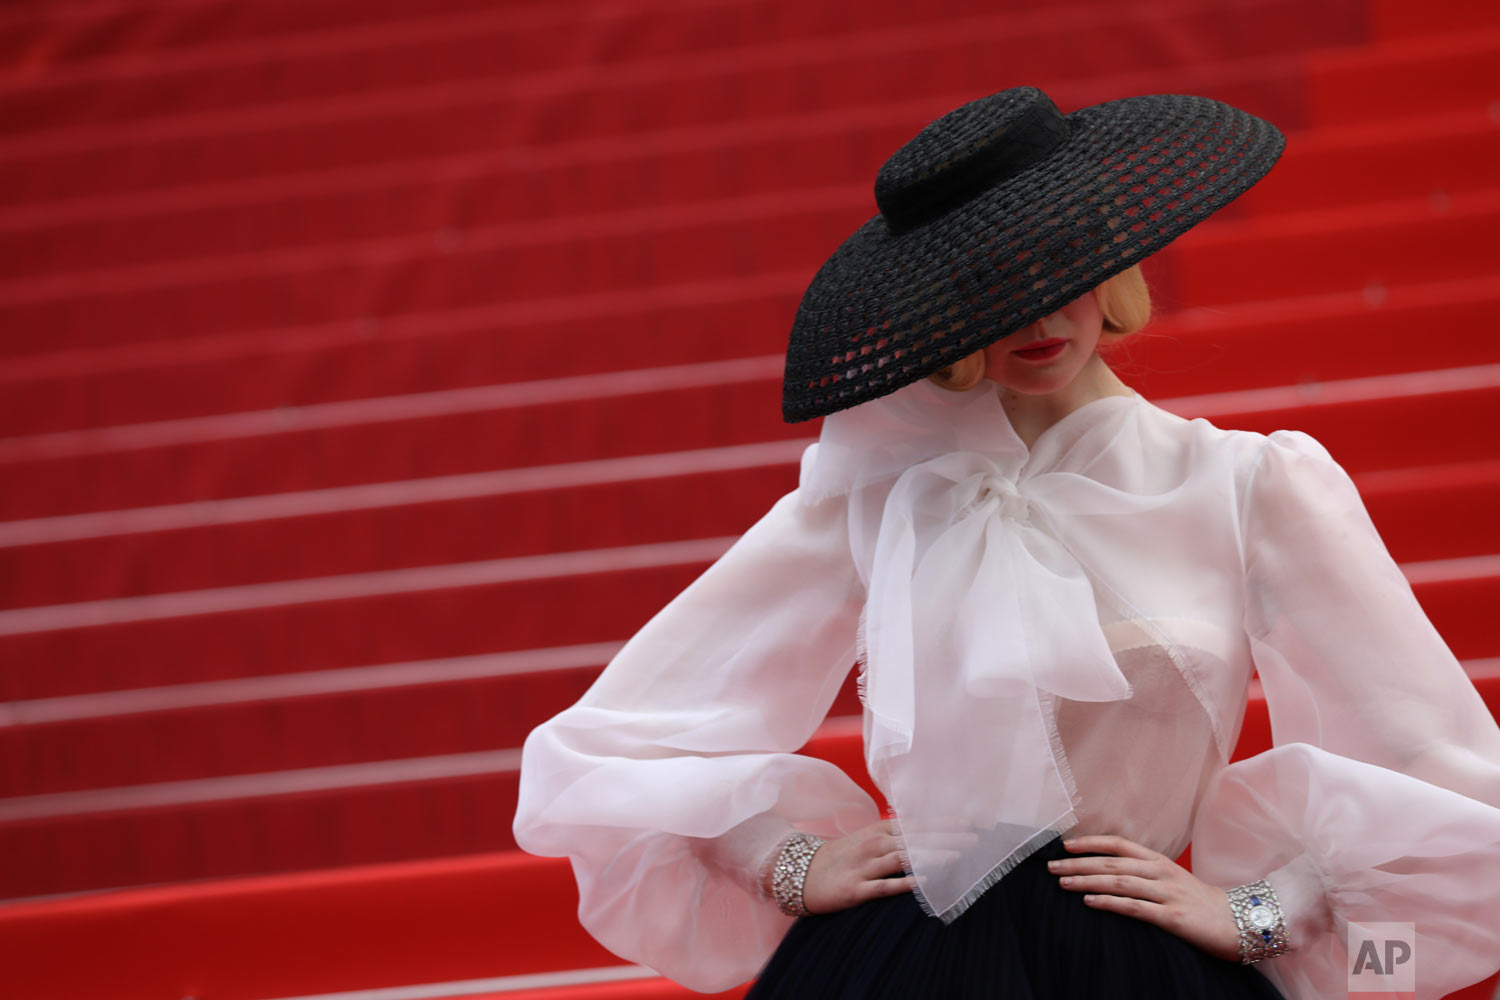 Jury member Elle Fanning poses for photographers at the premiere of the film 'Once Upon a Time in Hollywood' at the 72nd international film festival, Cannes, France, May 21, 2019. (Photo by Vianney Le Caer/Invision/AP)